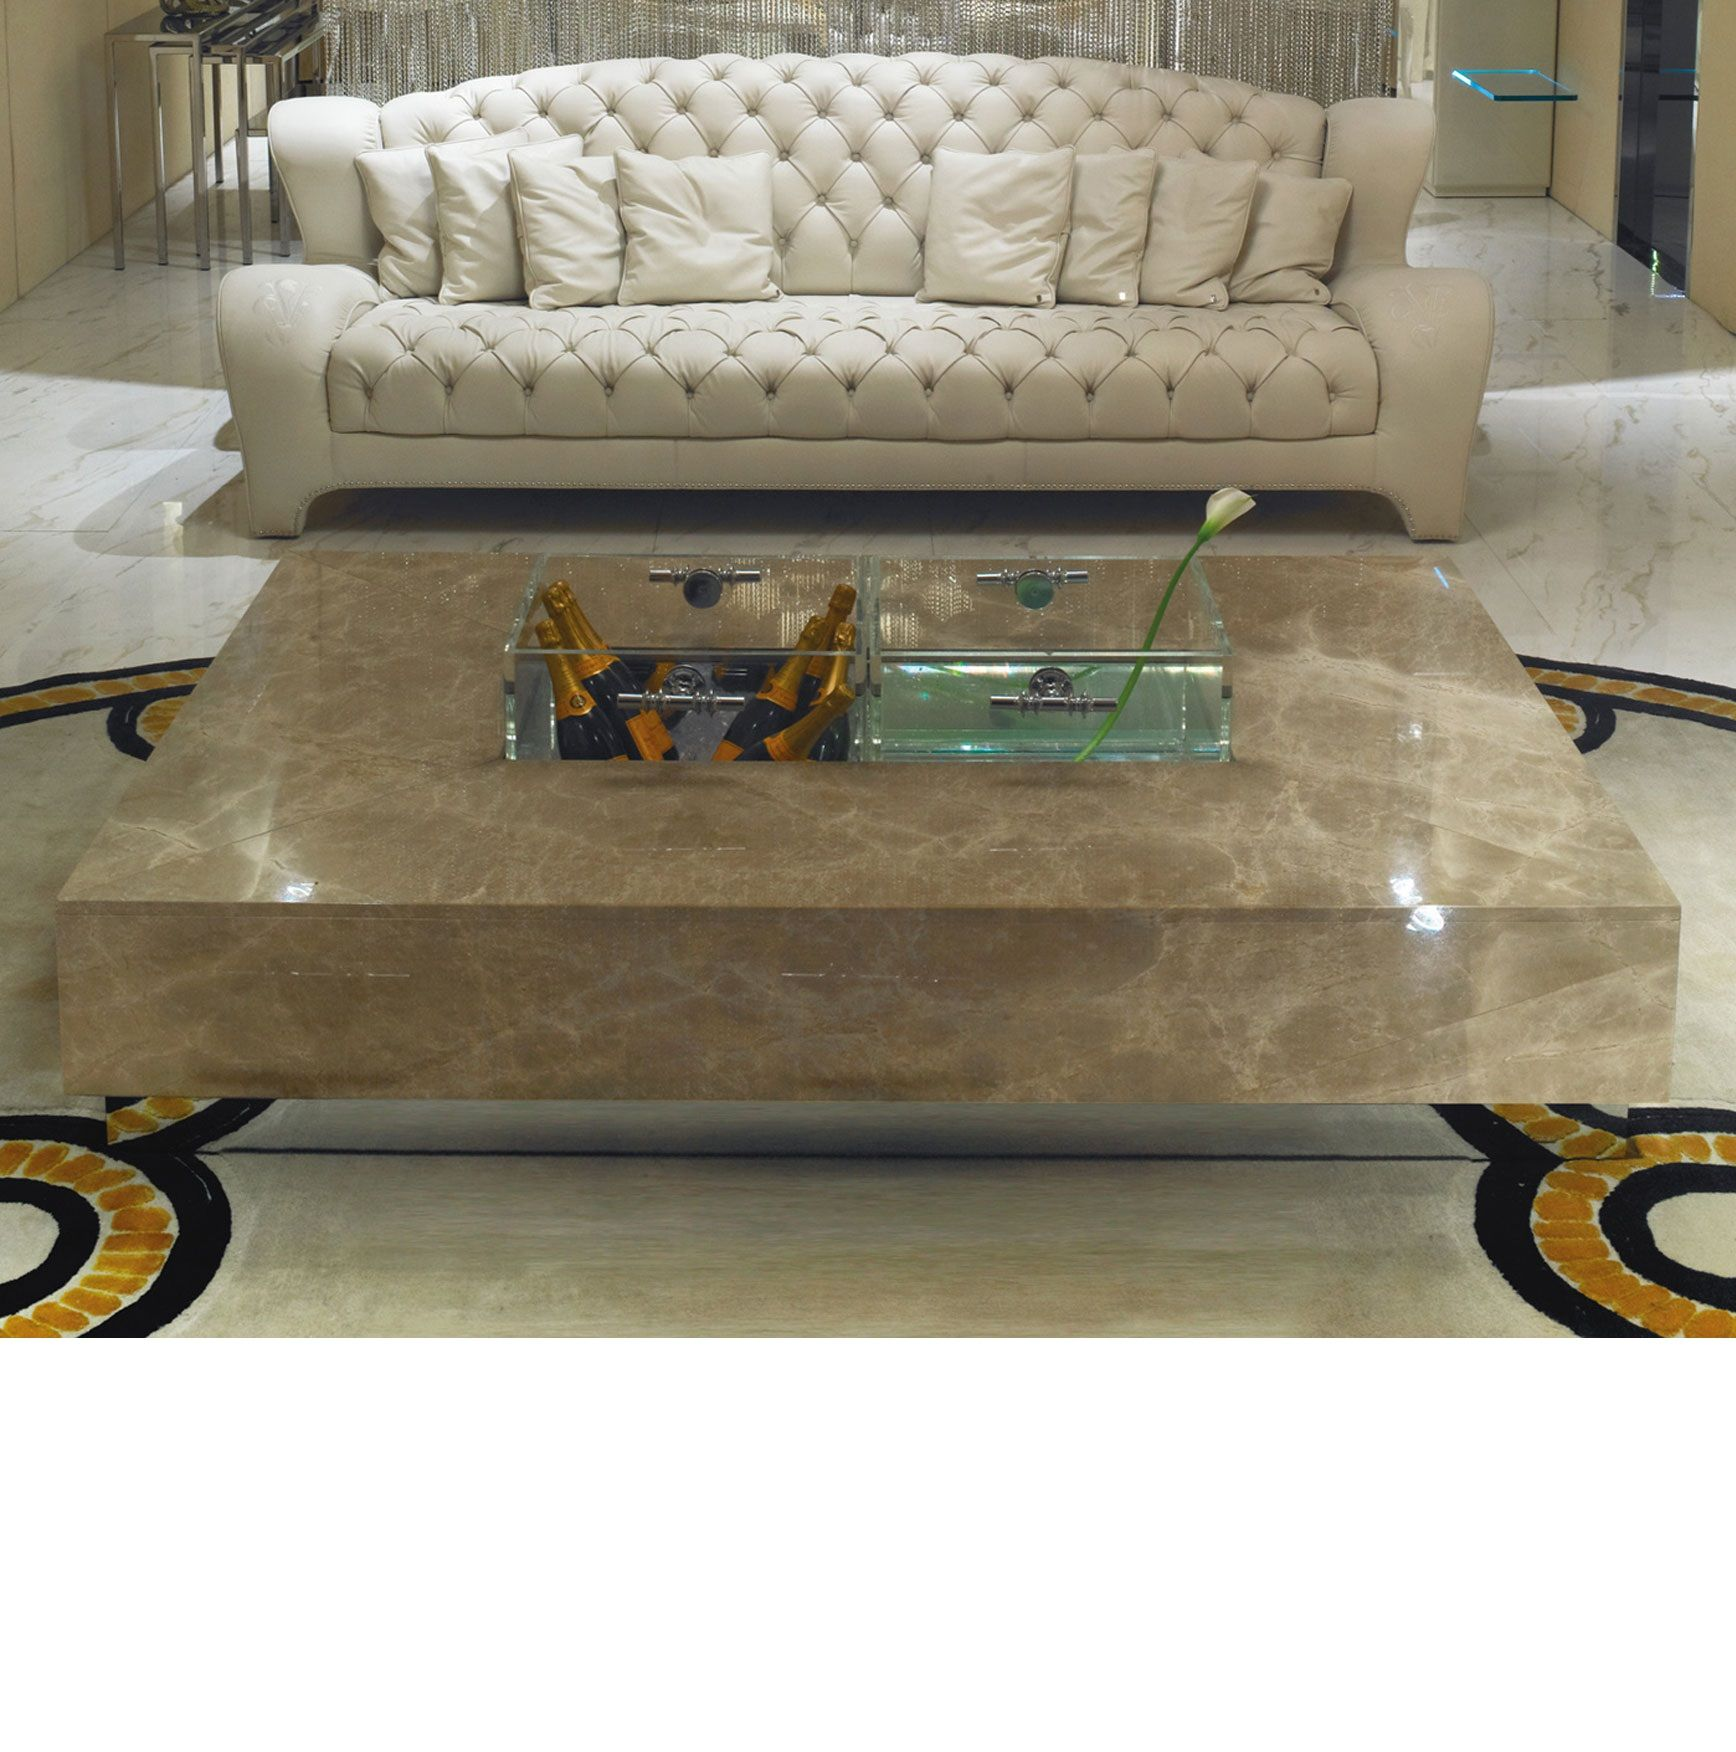 Instyle Decor Com Luxury Coffee Tables Cocktail Tables Luxury Interior Design Luxury Life Style Luxury Homes Living Room Decor Decoration Mobilier Table